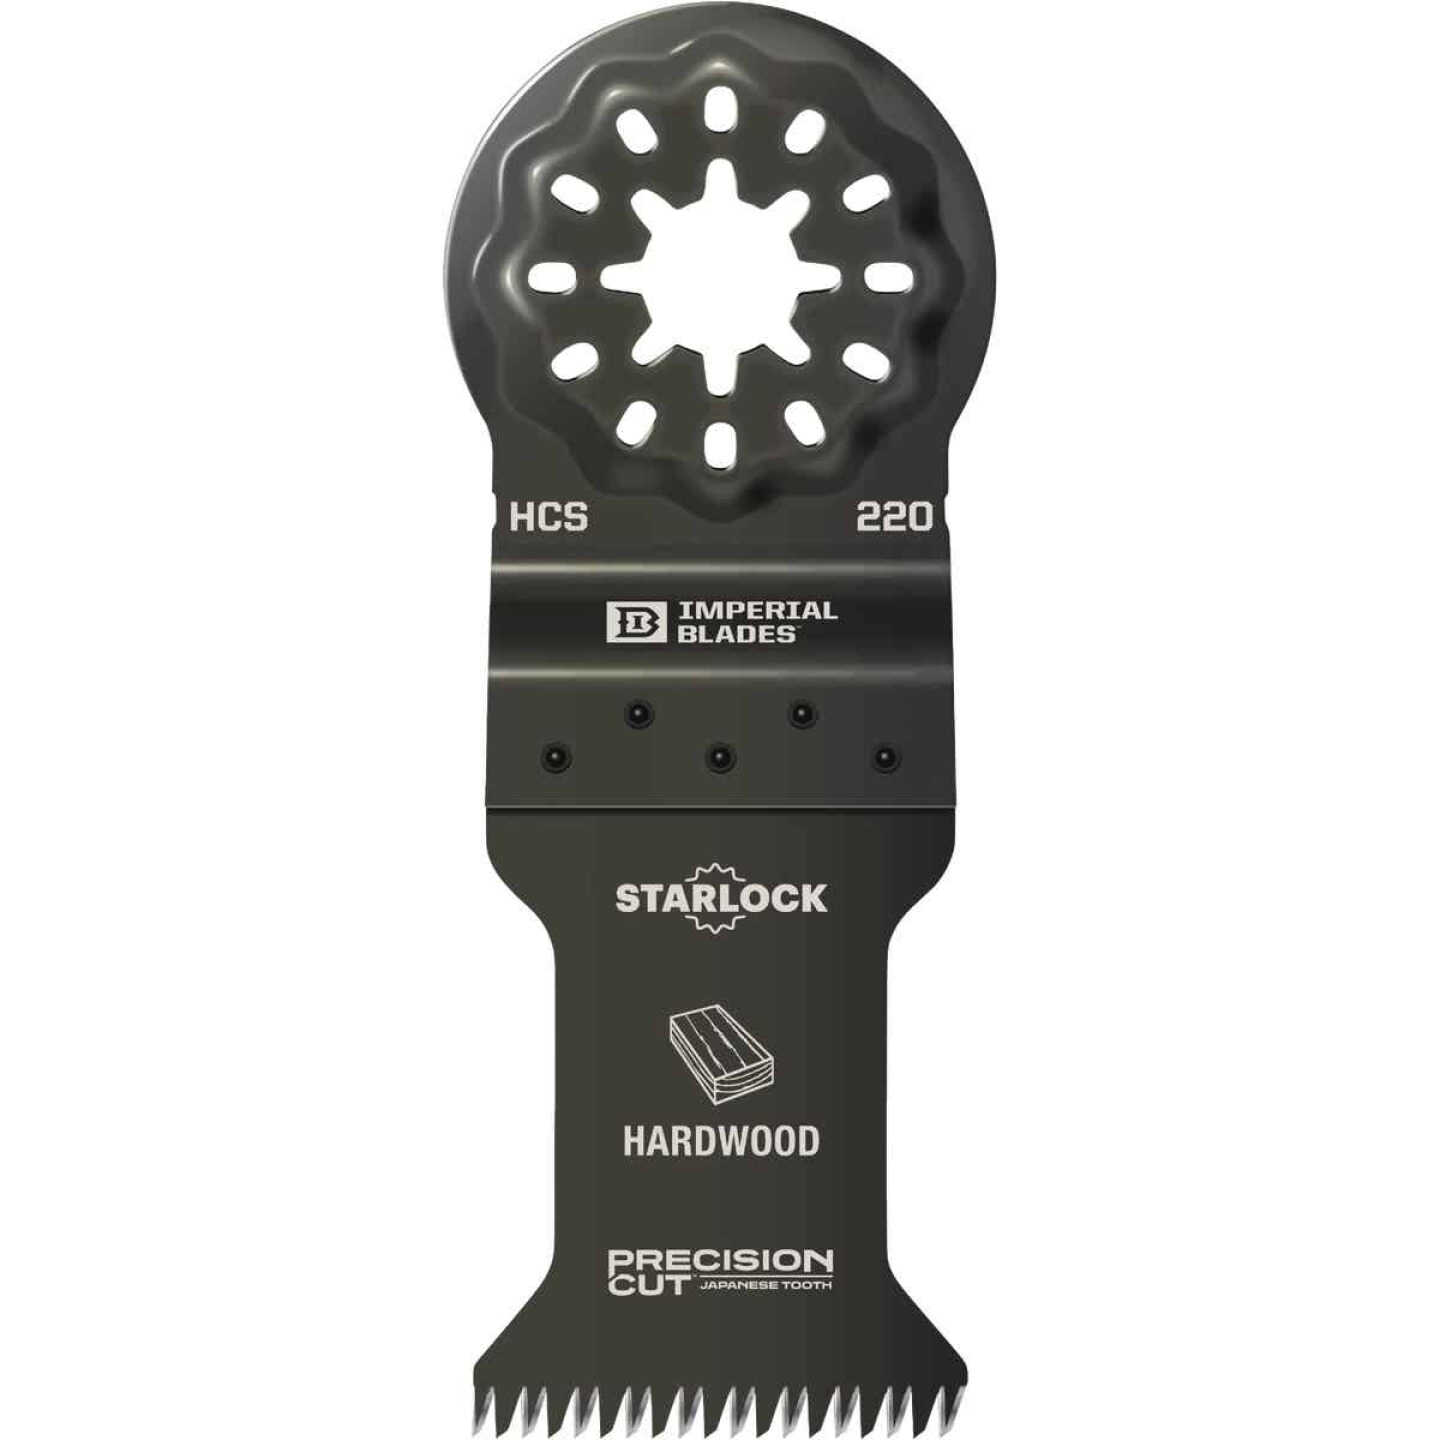 Imperial Blades Starlock 1-3/8 In. 14 TPI Precision Wood Oscillating Blade Image 1